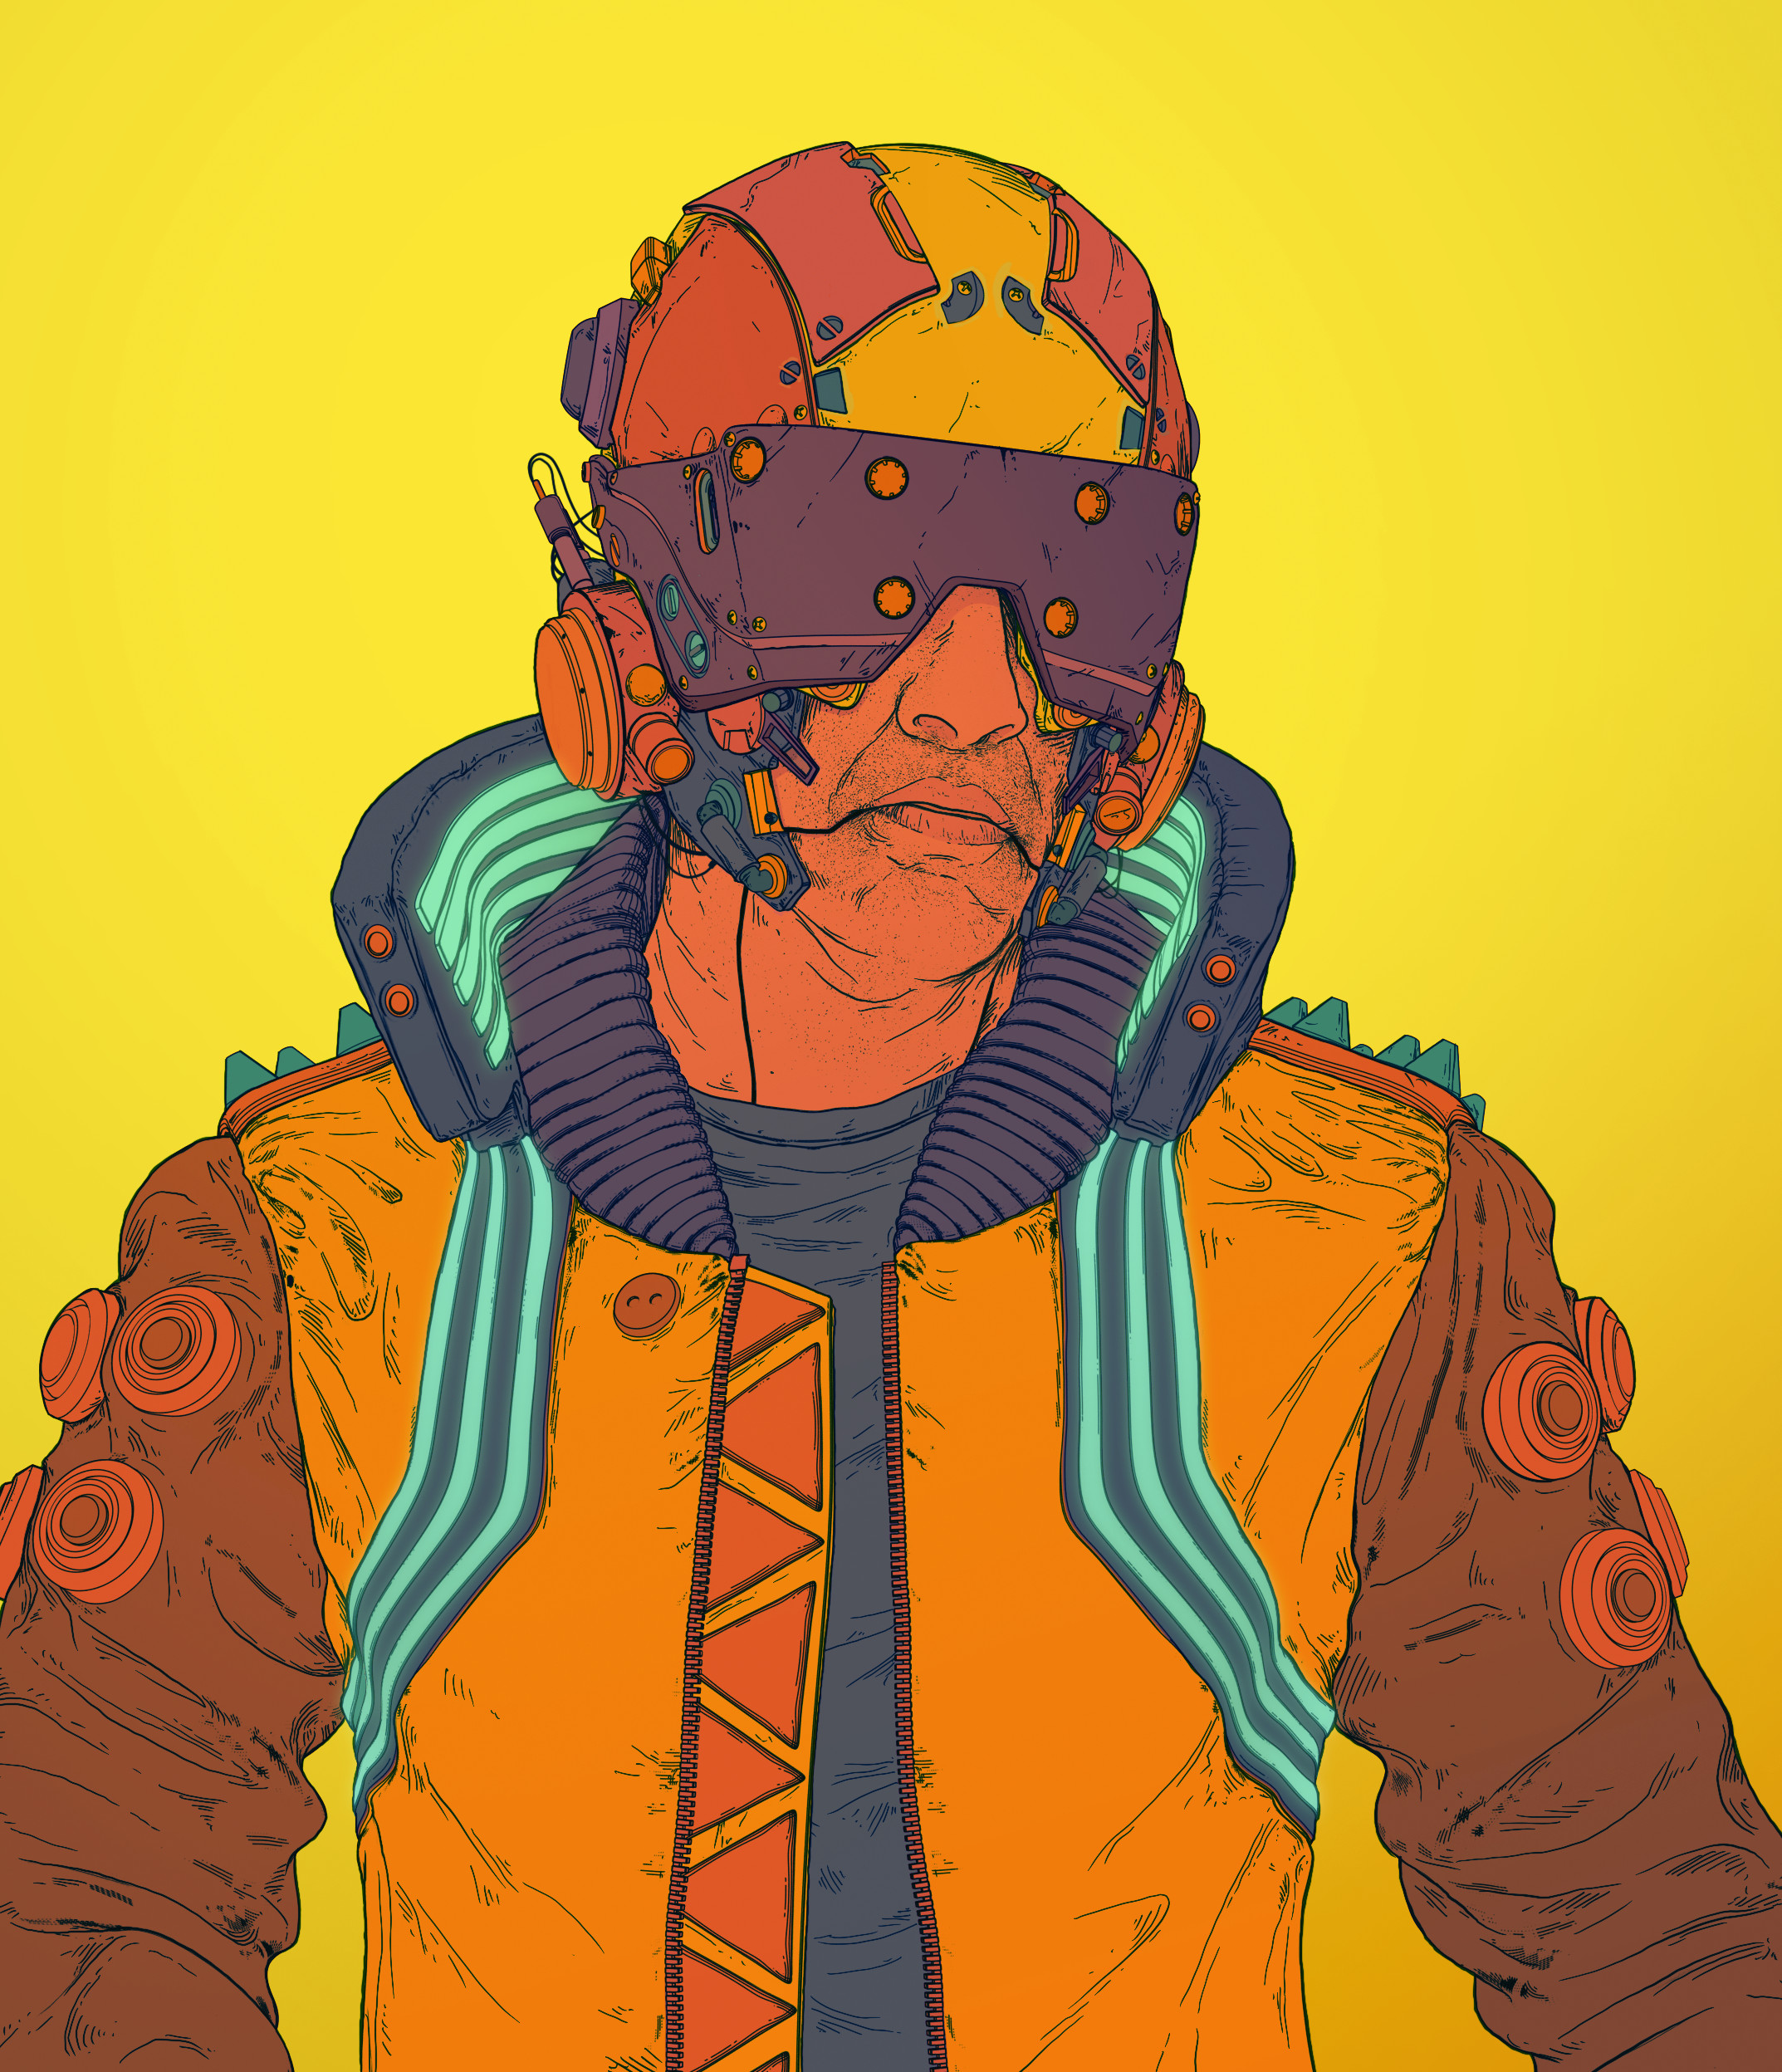 Comic style illustration from 3D renders